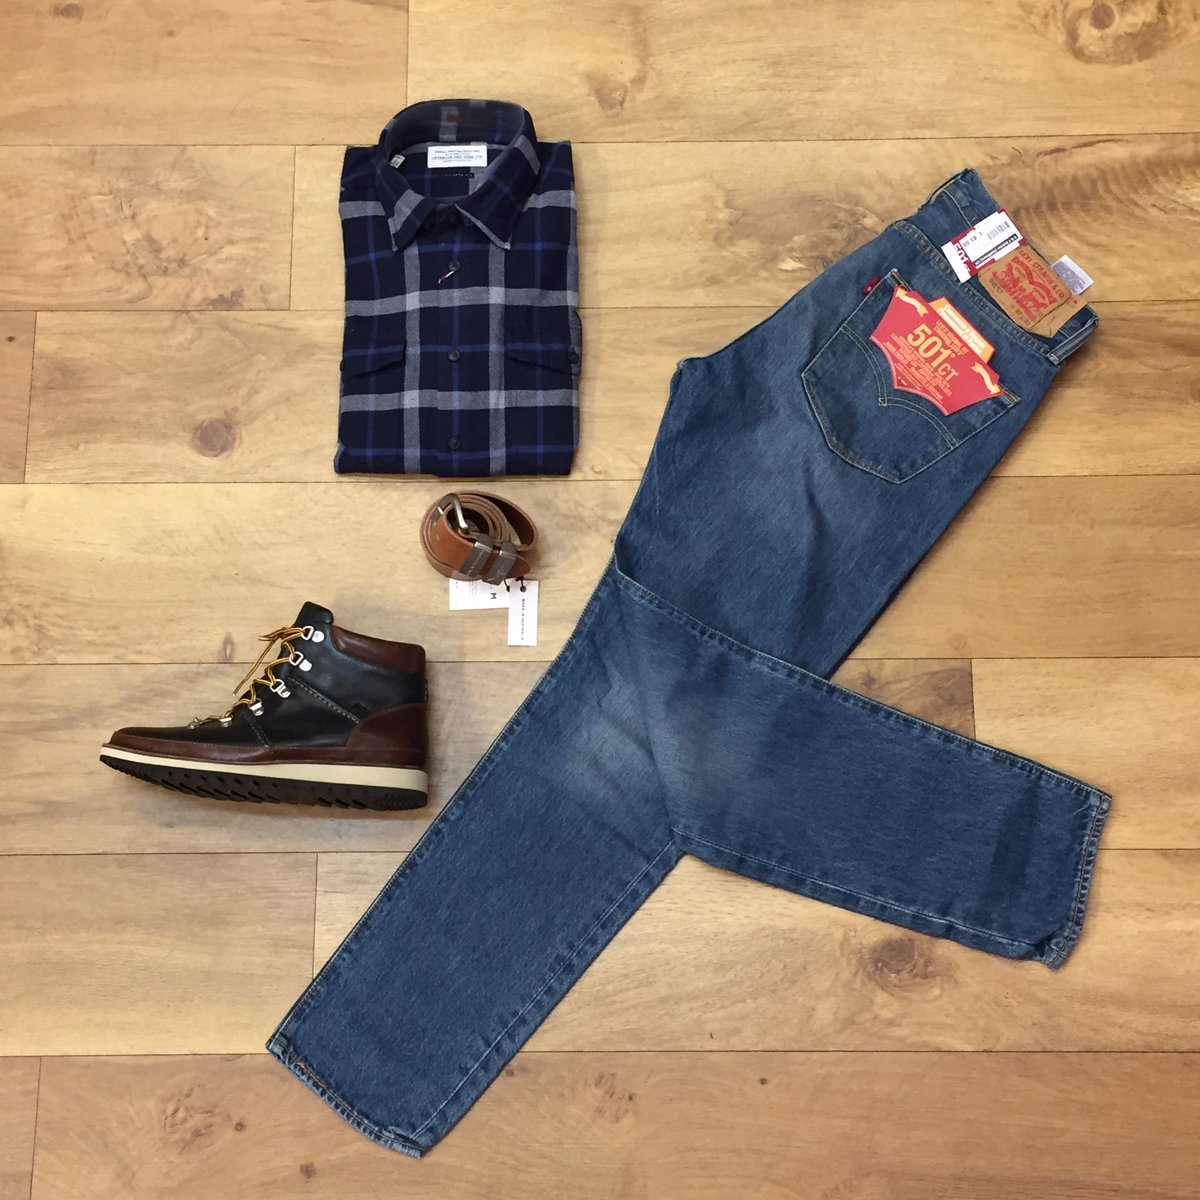 Our #ootd features @Barbour Shirt, @Sperry_UK boots, @Levis_UK Jeans and @RMWilliamsUK Belt #menswear #autumnwinter #shirt #jeans #suffolk